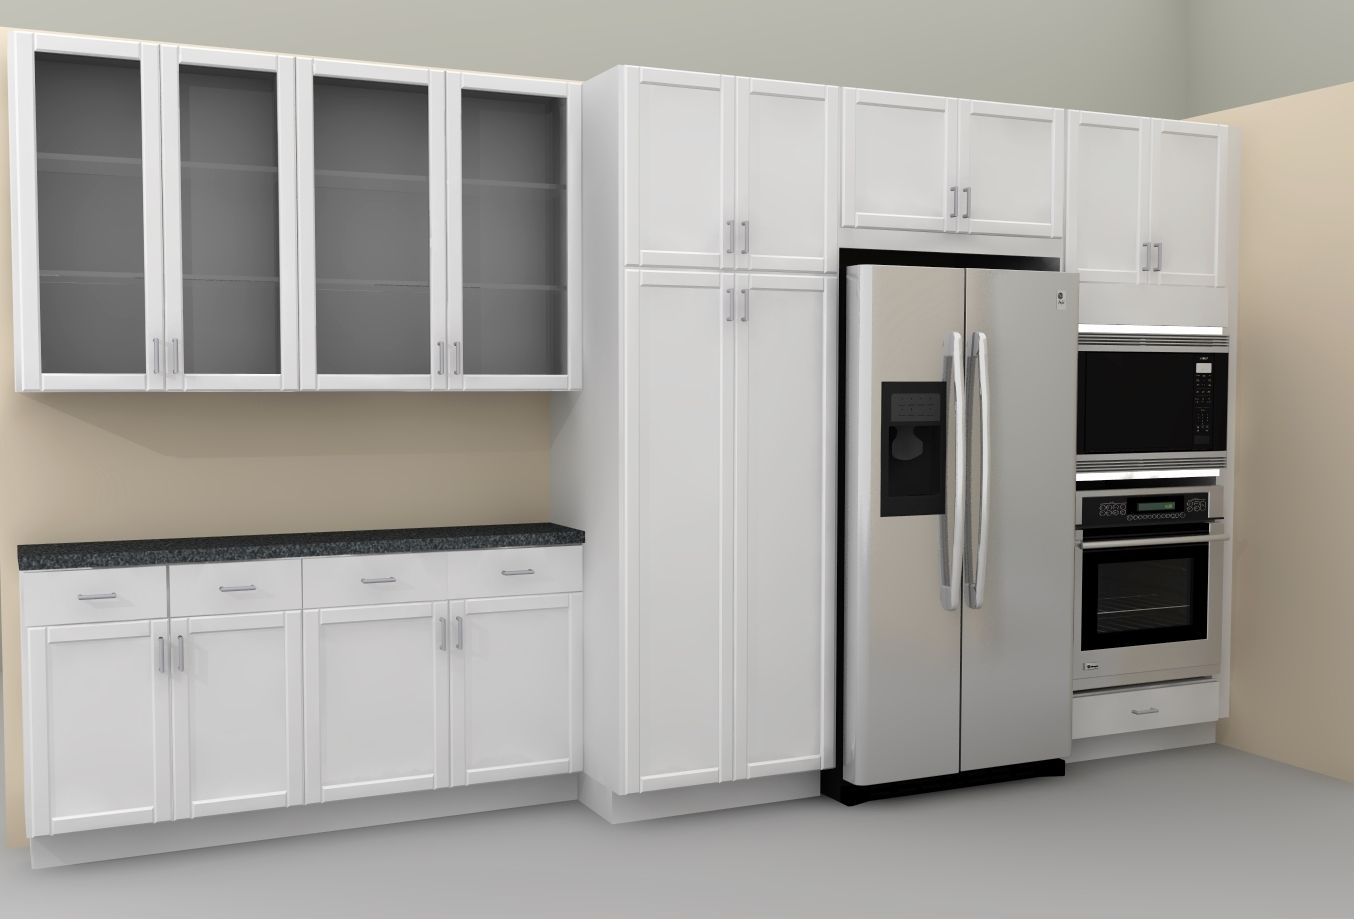 Best Ikea Kitchen Cabinets With Glass Doors Pantry Cabinet 640 x 480